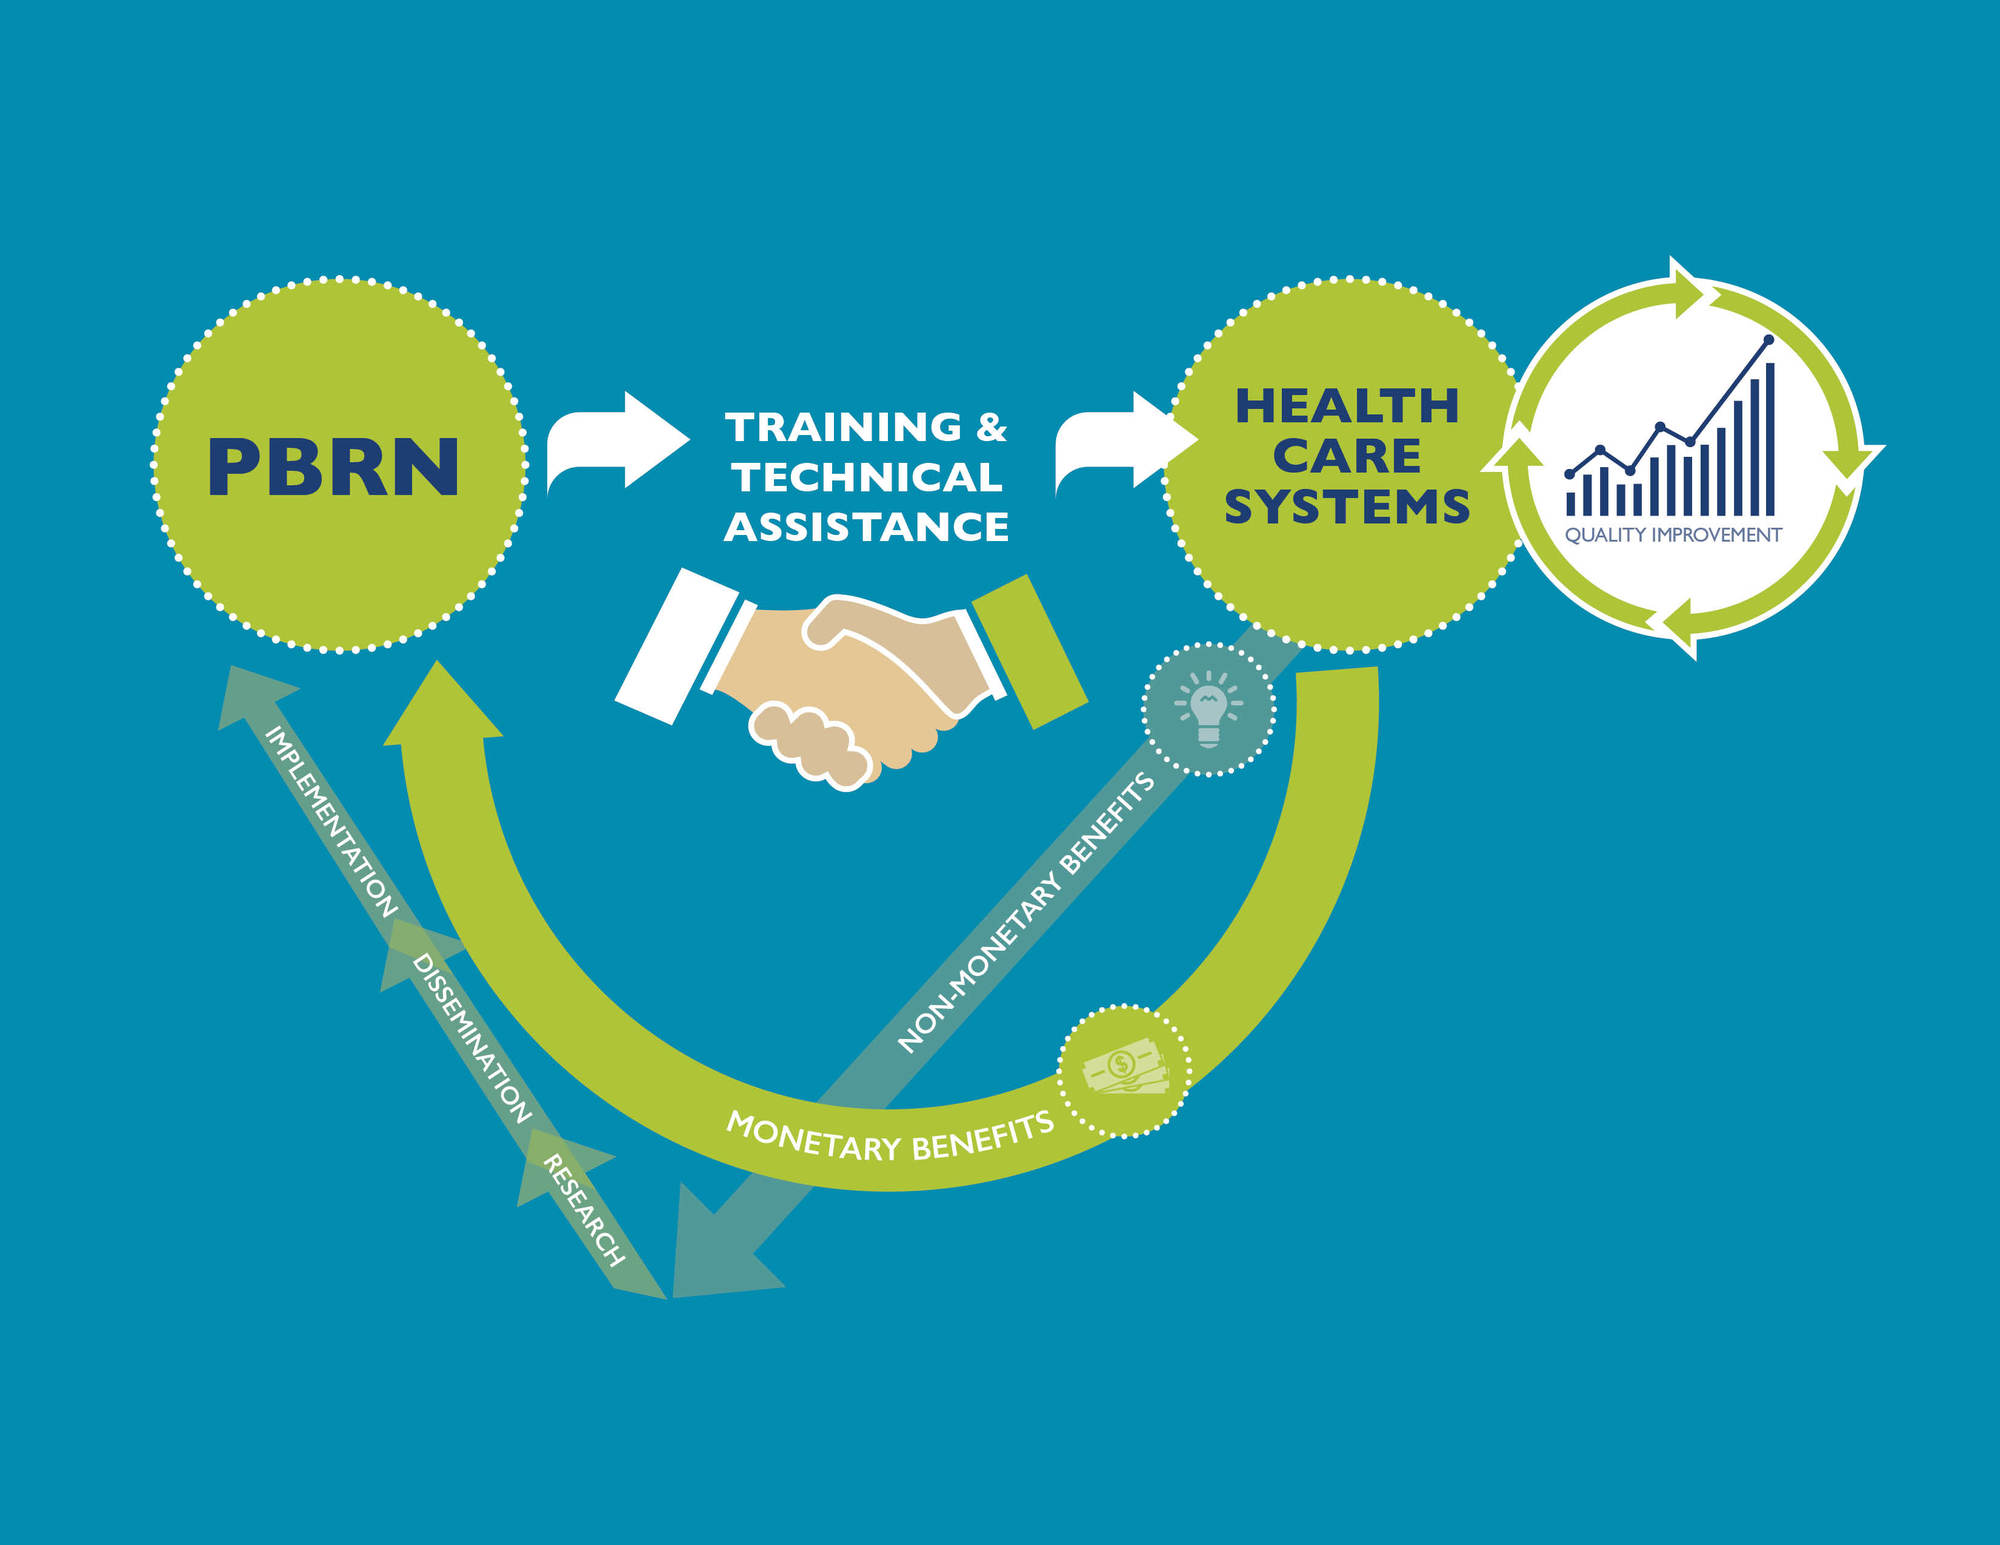 PBRNs_Health Care Systems